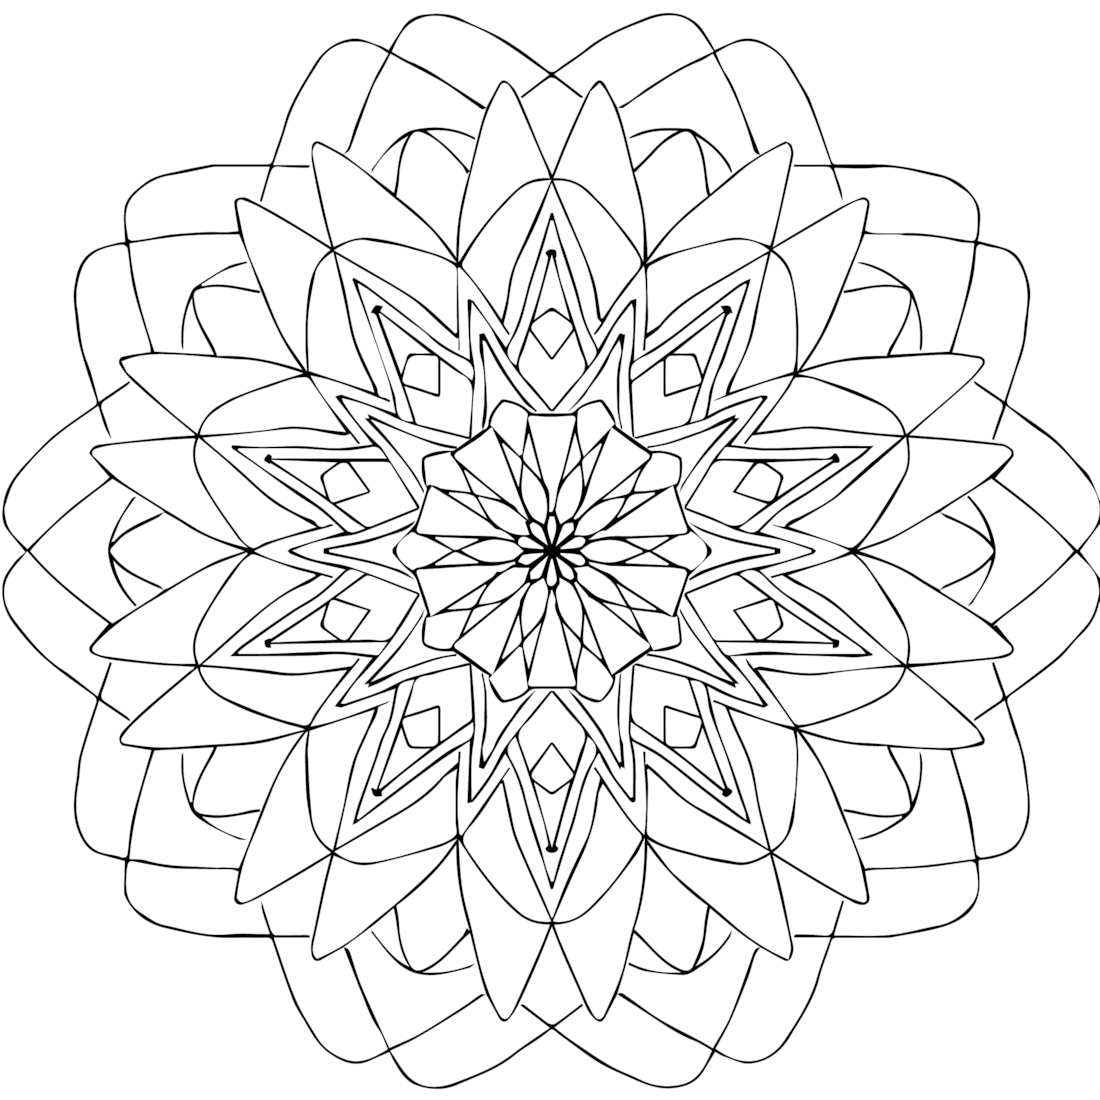 There Are Eight Categories Of Snowflakes According To Studies The Types Of Crystals That Form Mandala Coloring Pages Mandala Coloring Detailed Coloring Pages